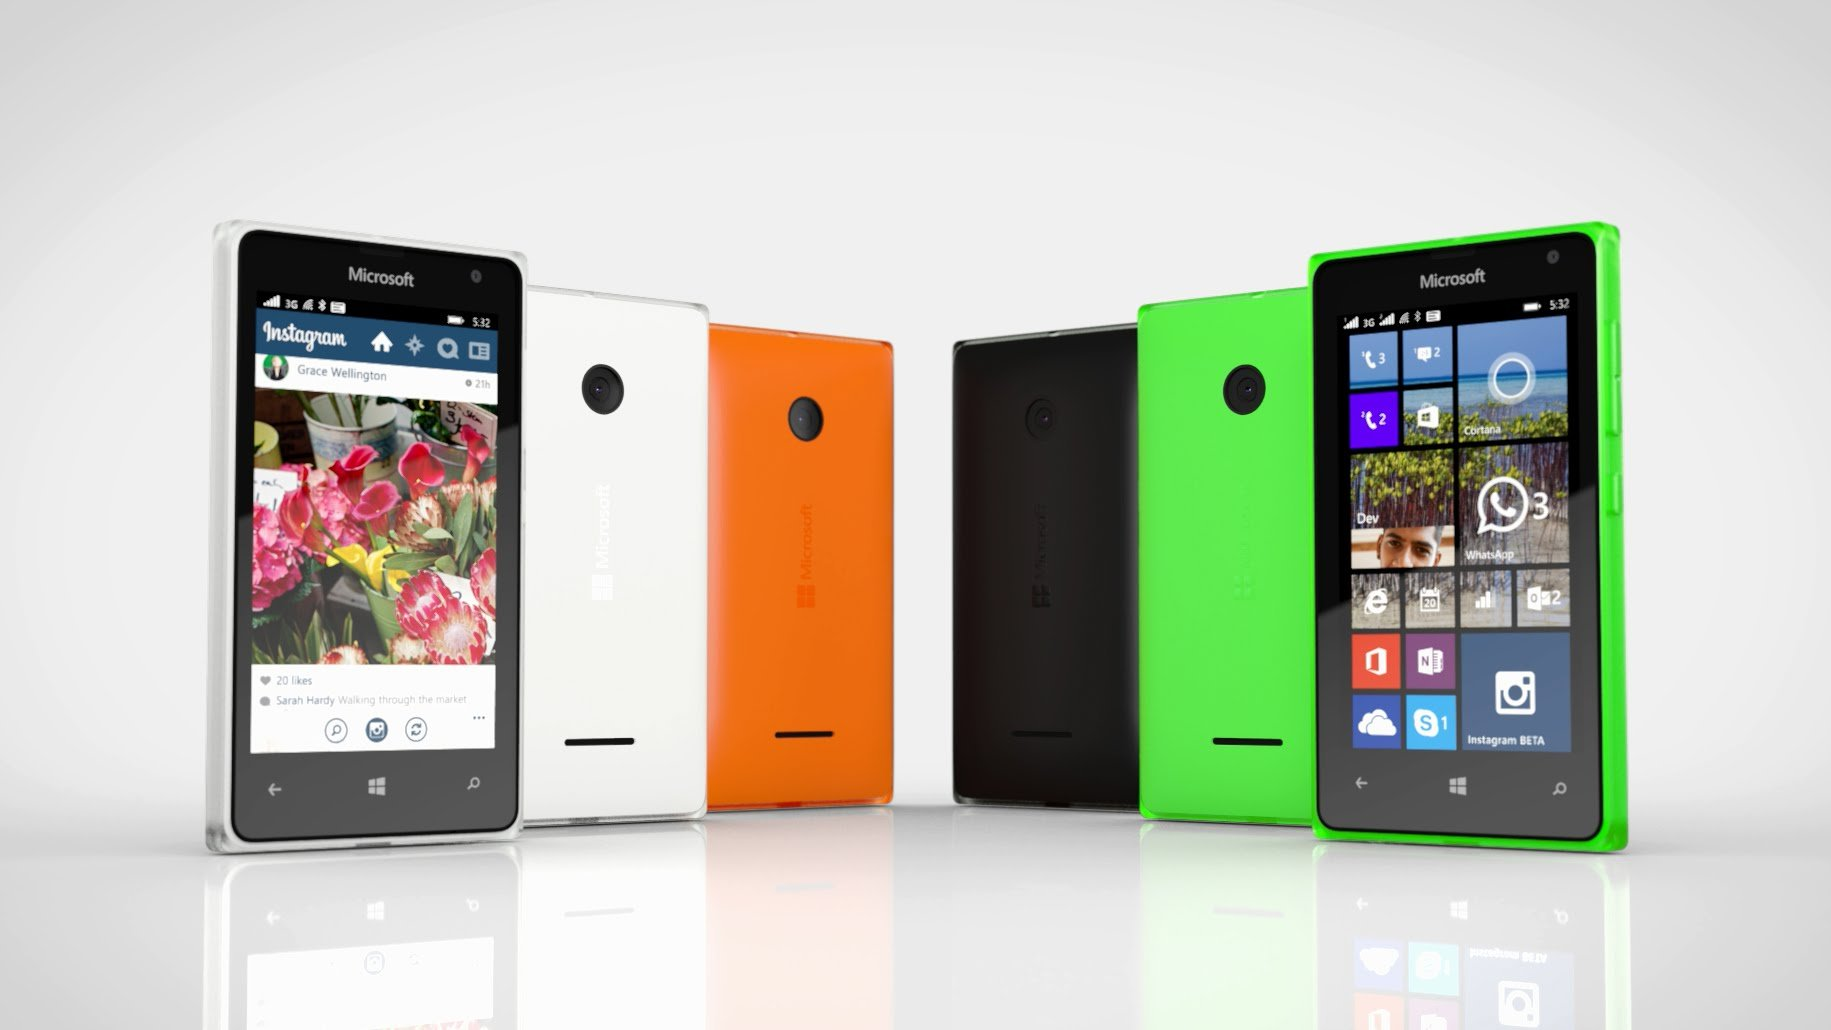 Image result for Microsoft lumia 532 single sim